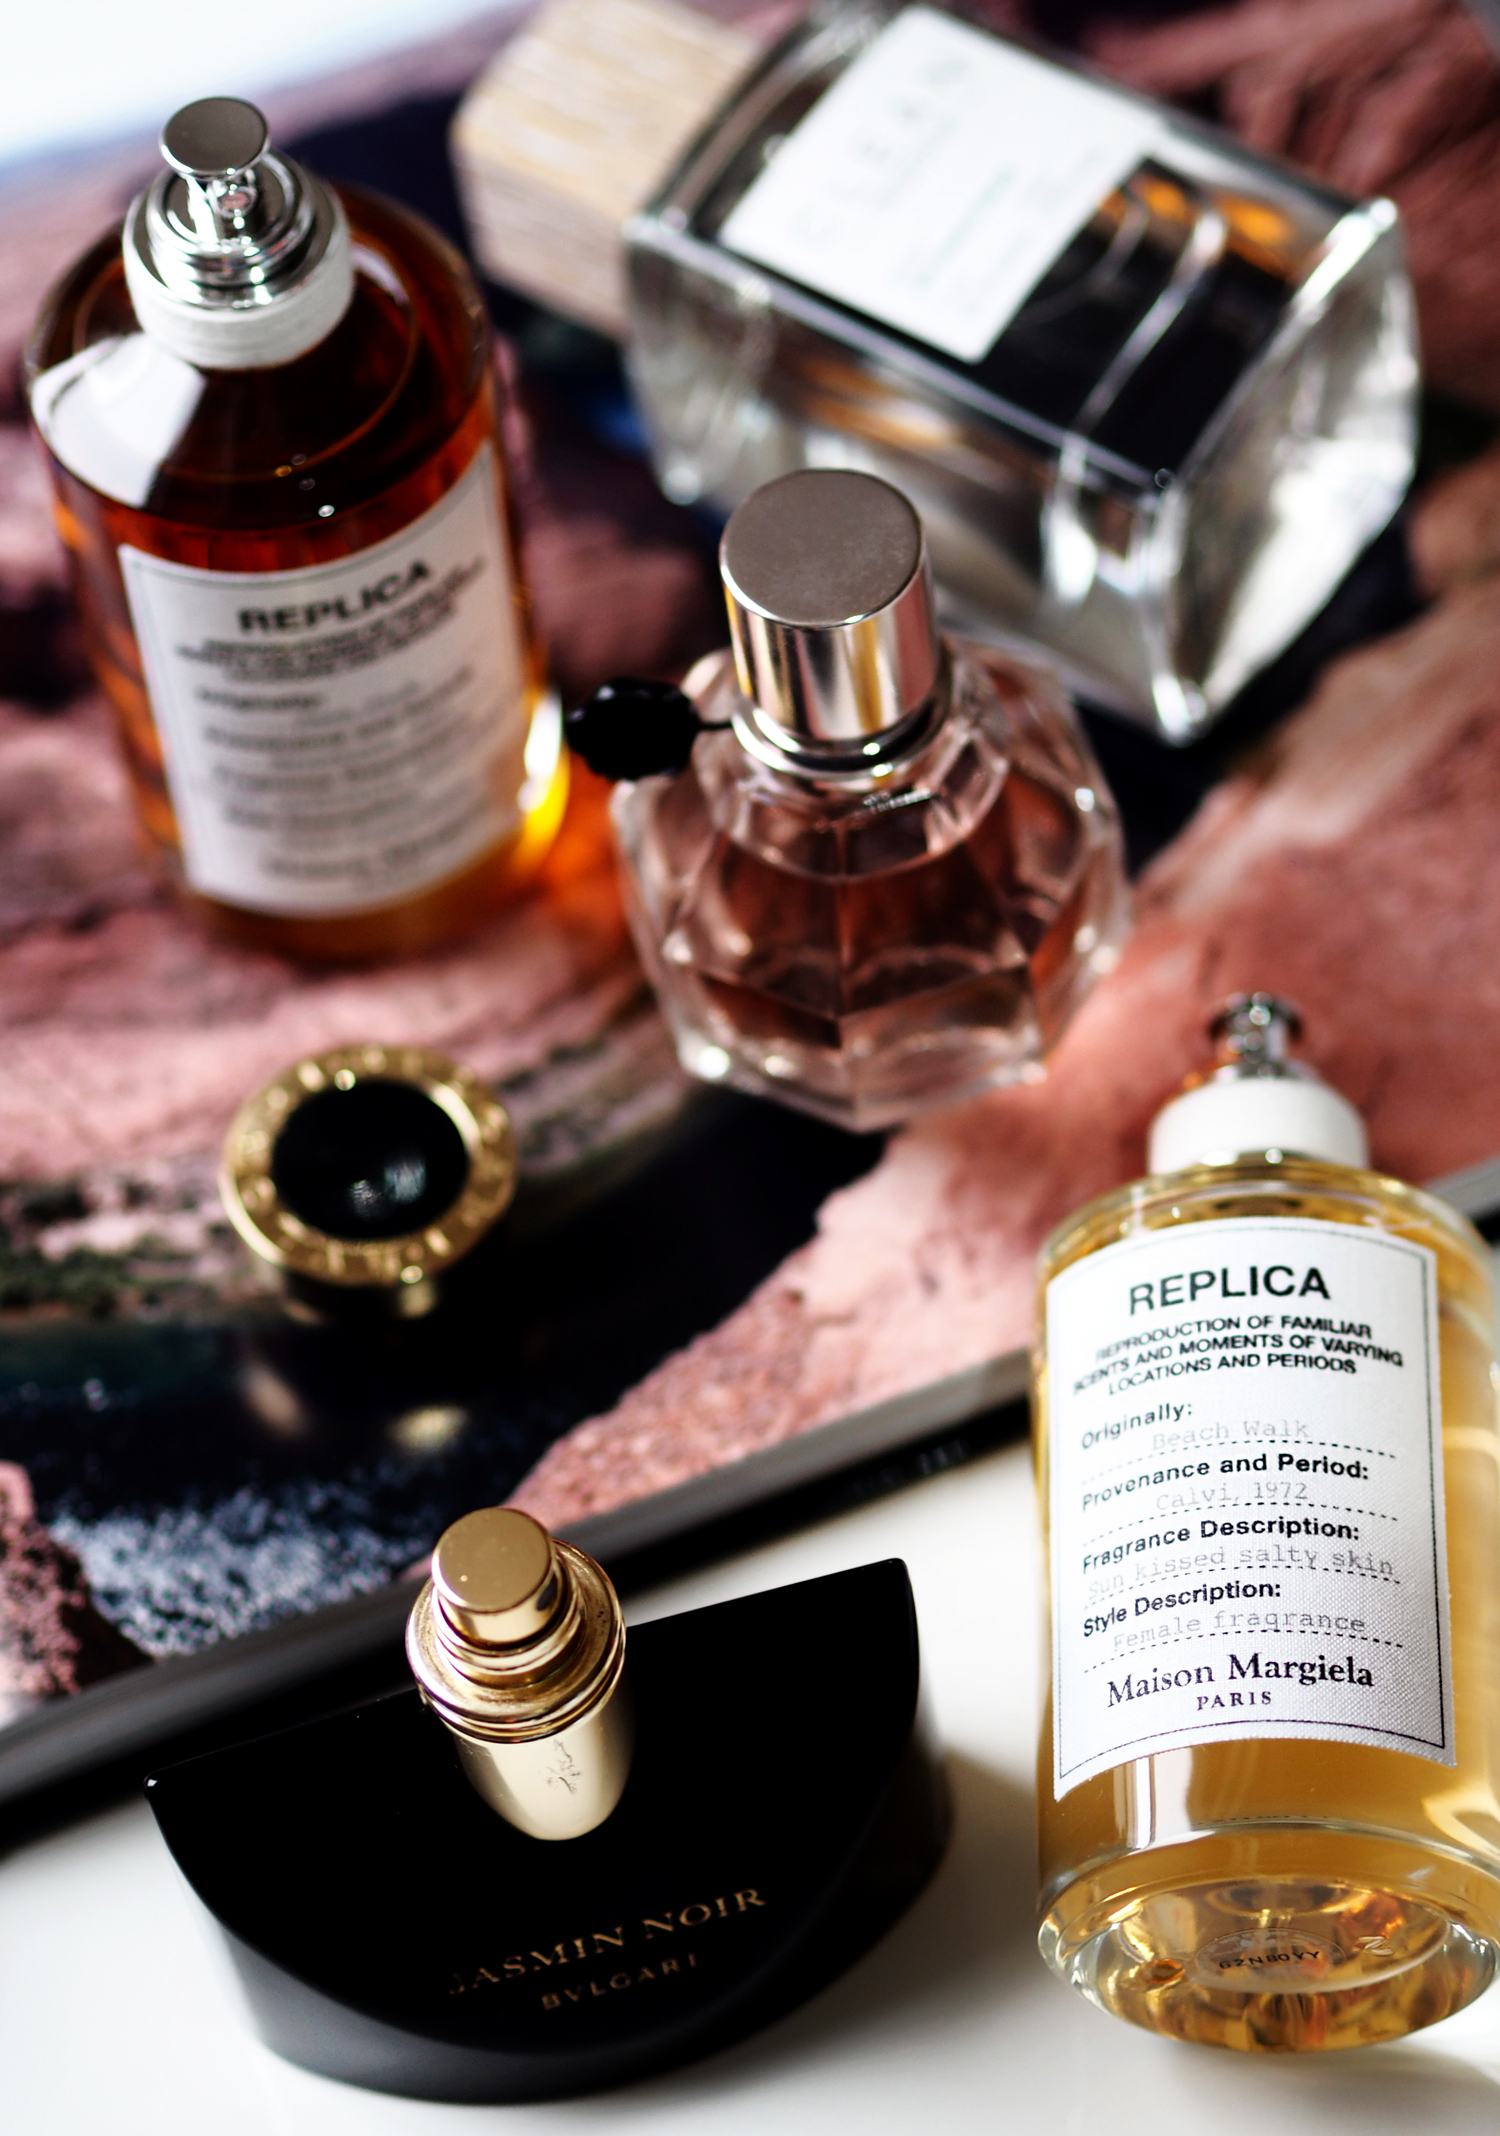 choosing-a-signature-fragrance-guide-zoe-newlove-beauty-blogger